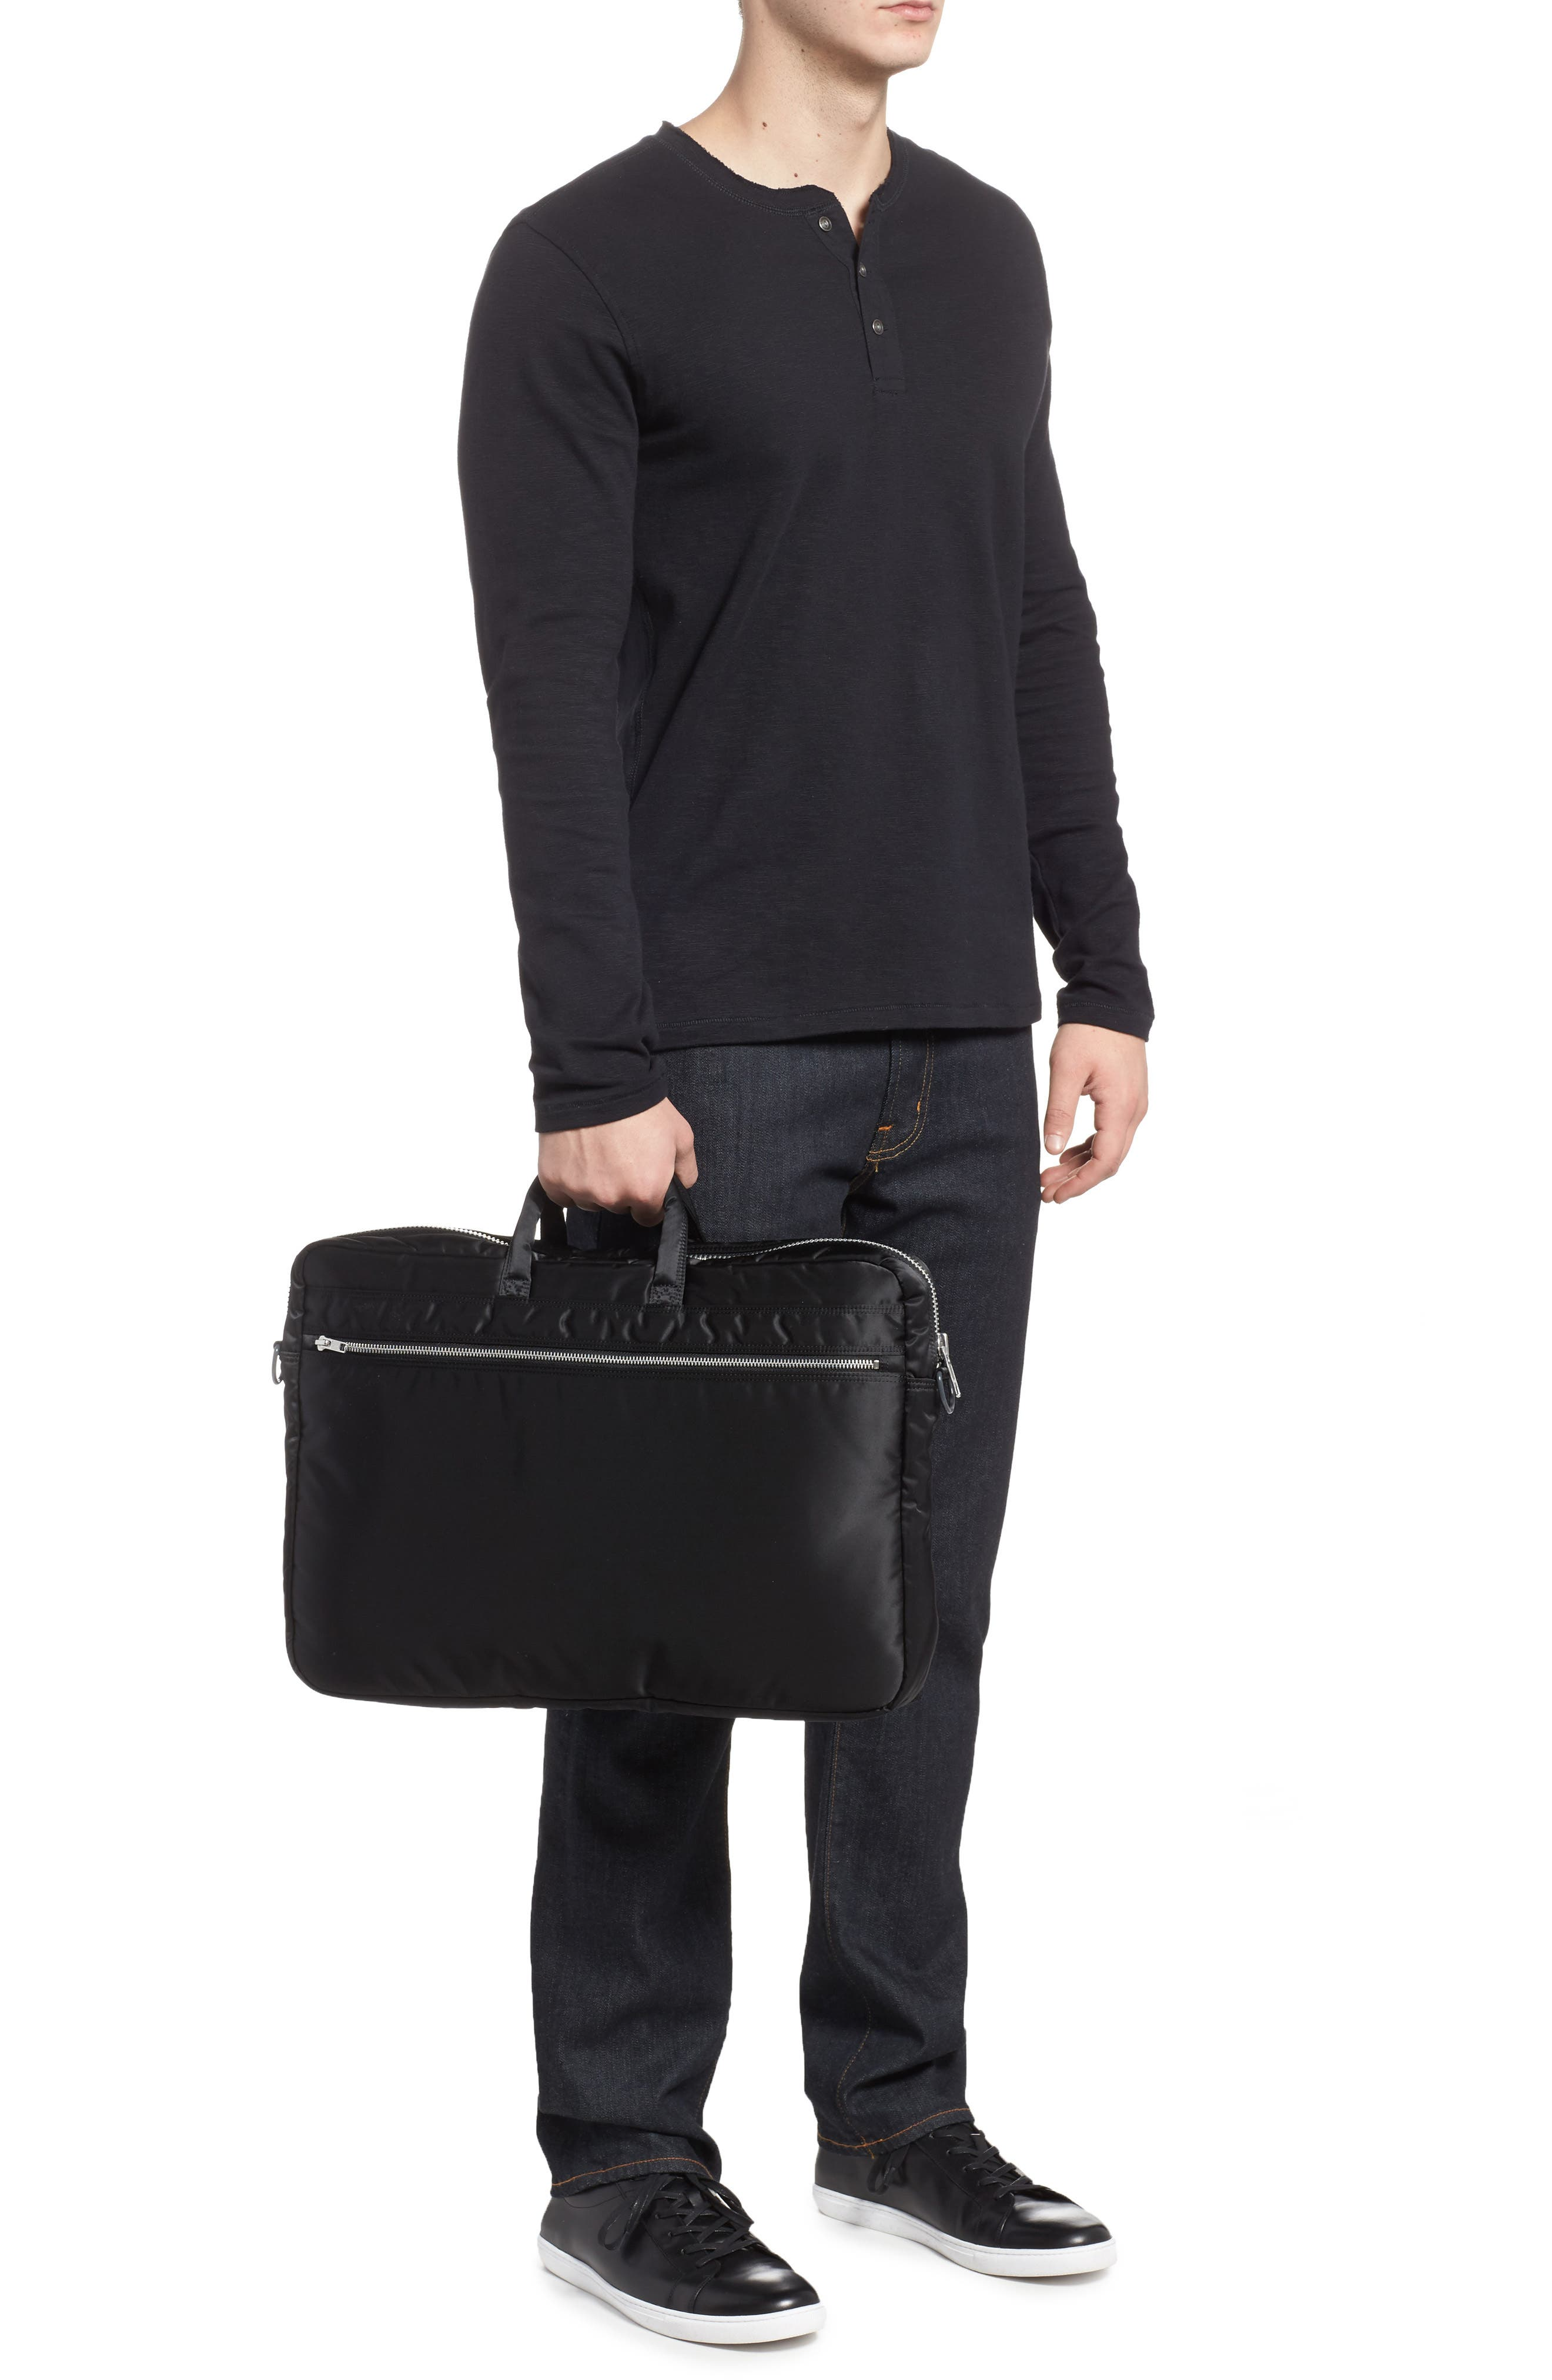 Porter-Yoshida & Co. Tanker Two-Way Briefcase,                             Alternate thumbnail 2, color,                             Black